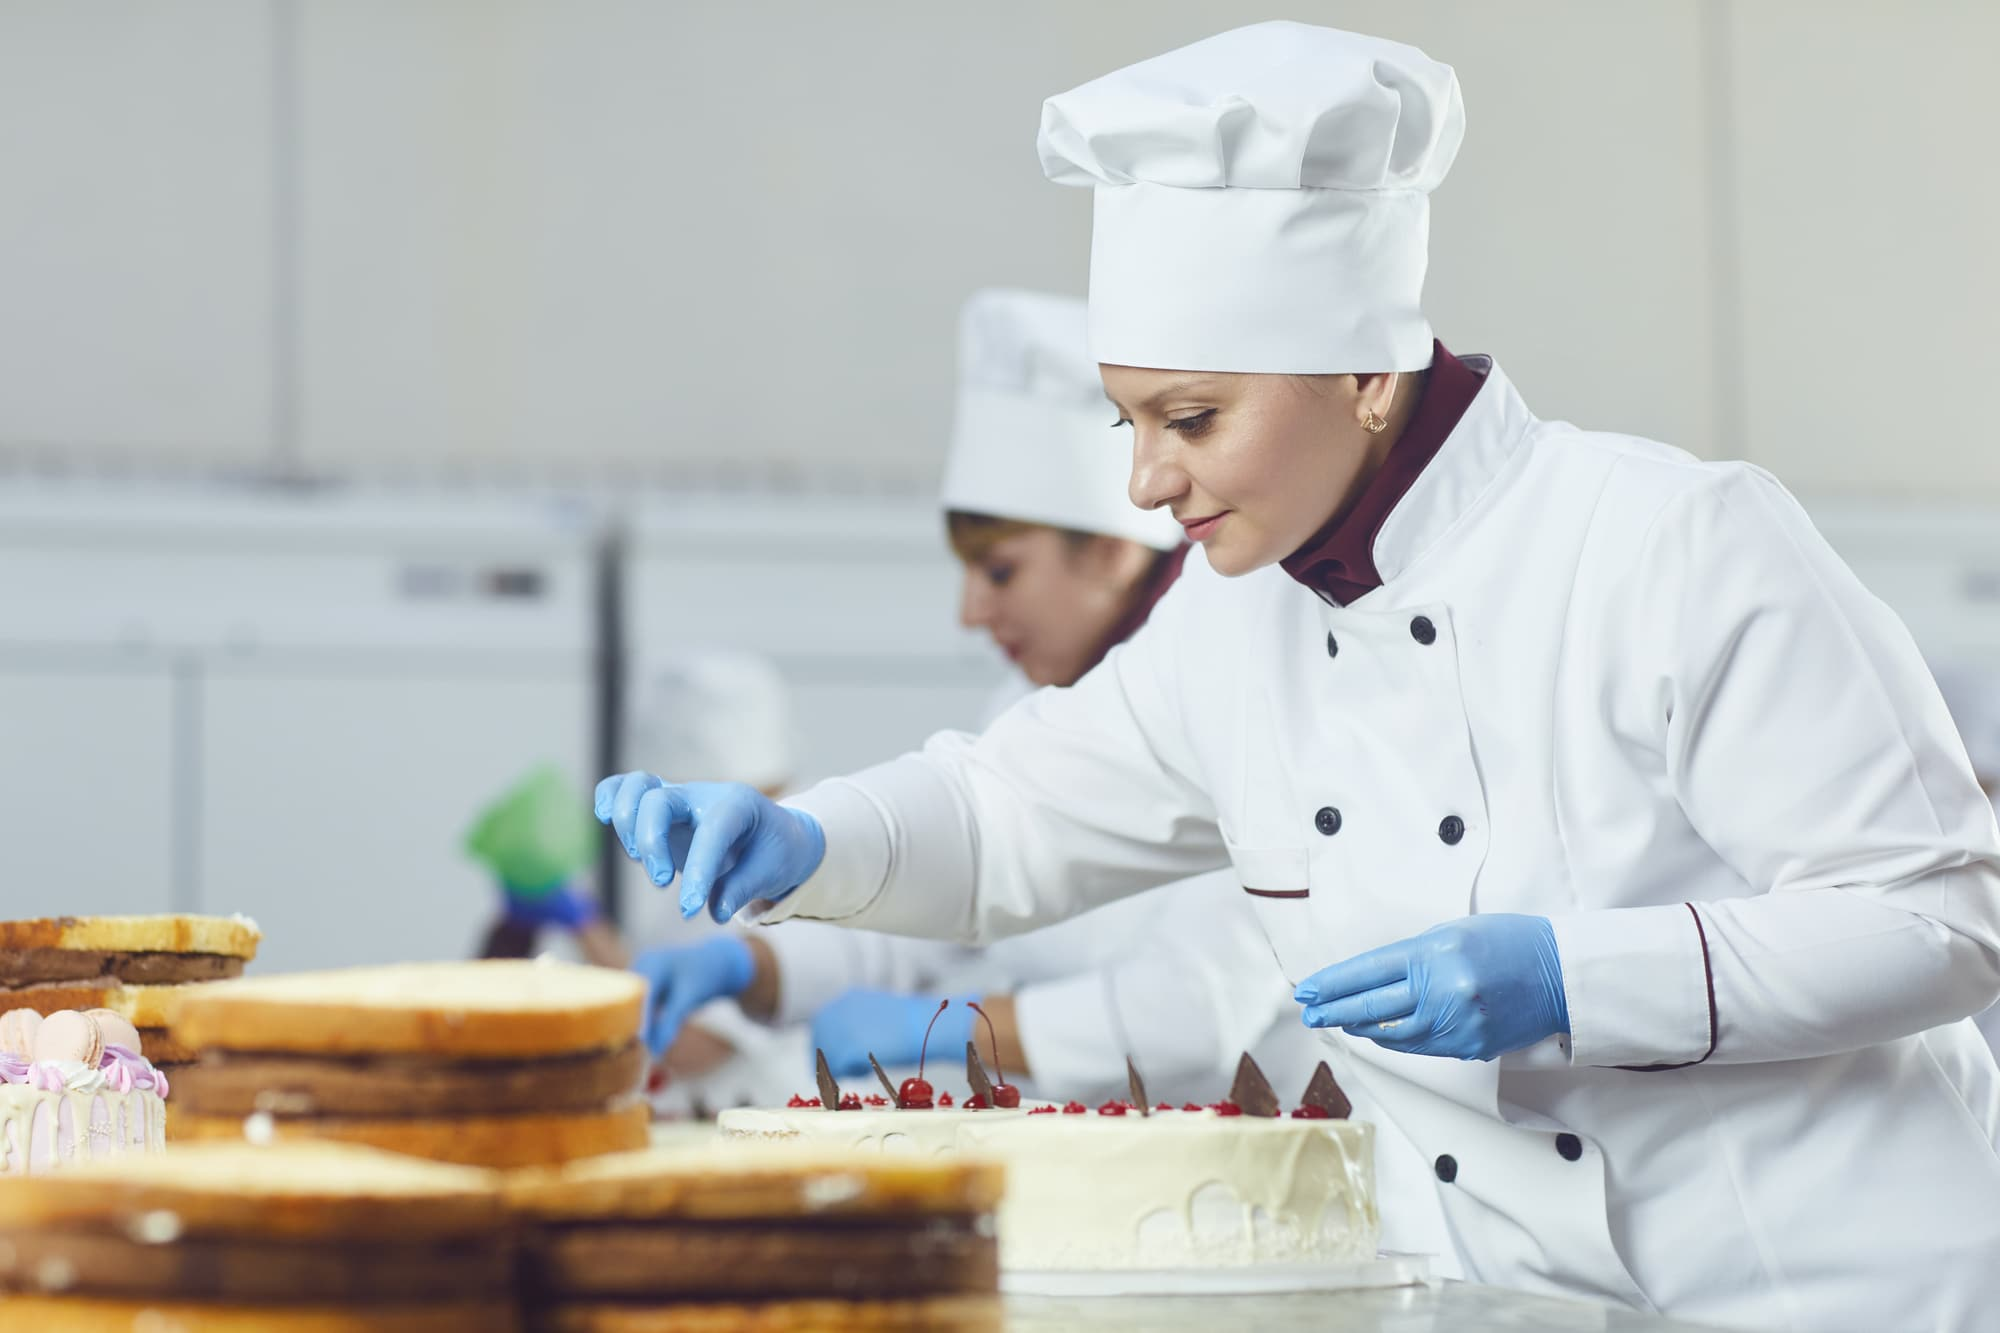 How To Setup A Bakery Business In Dubai?